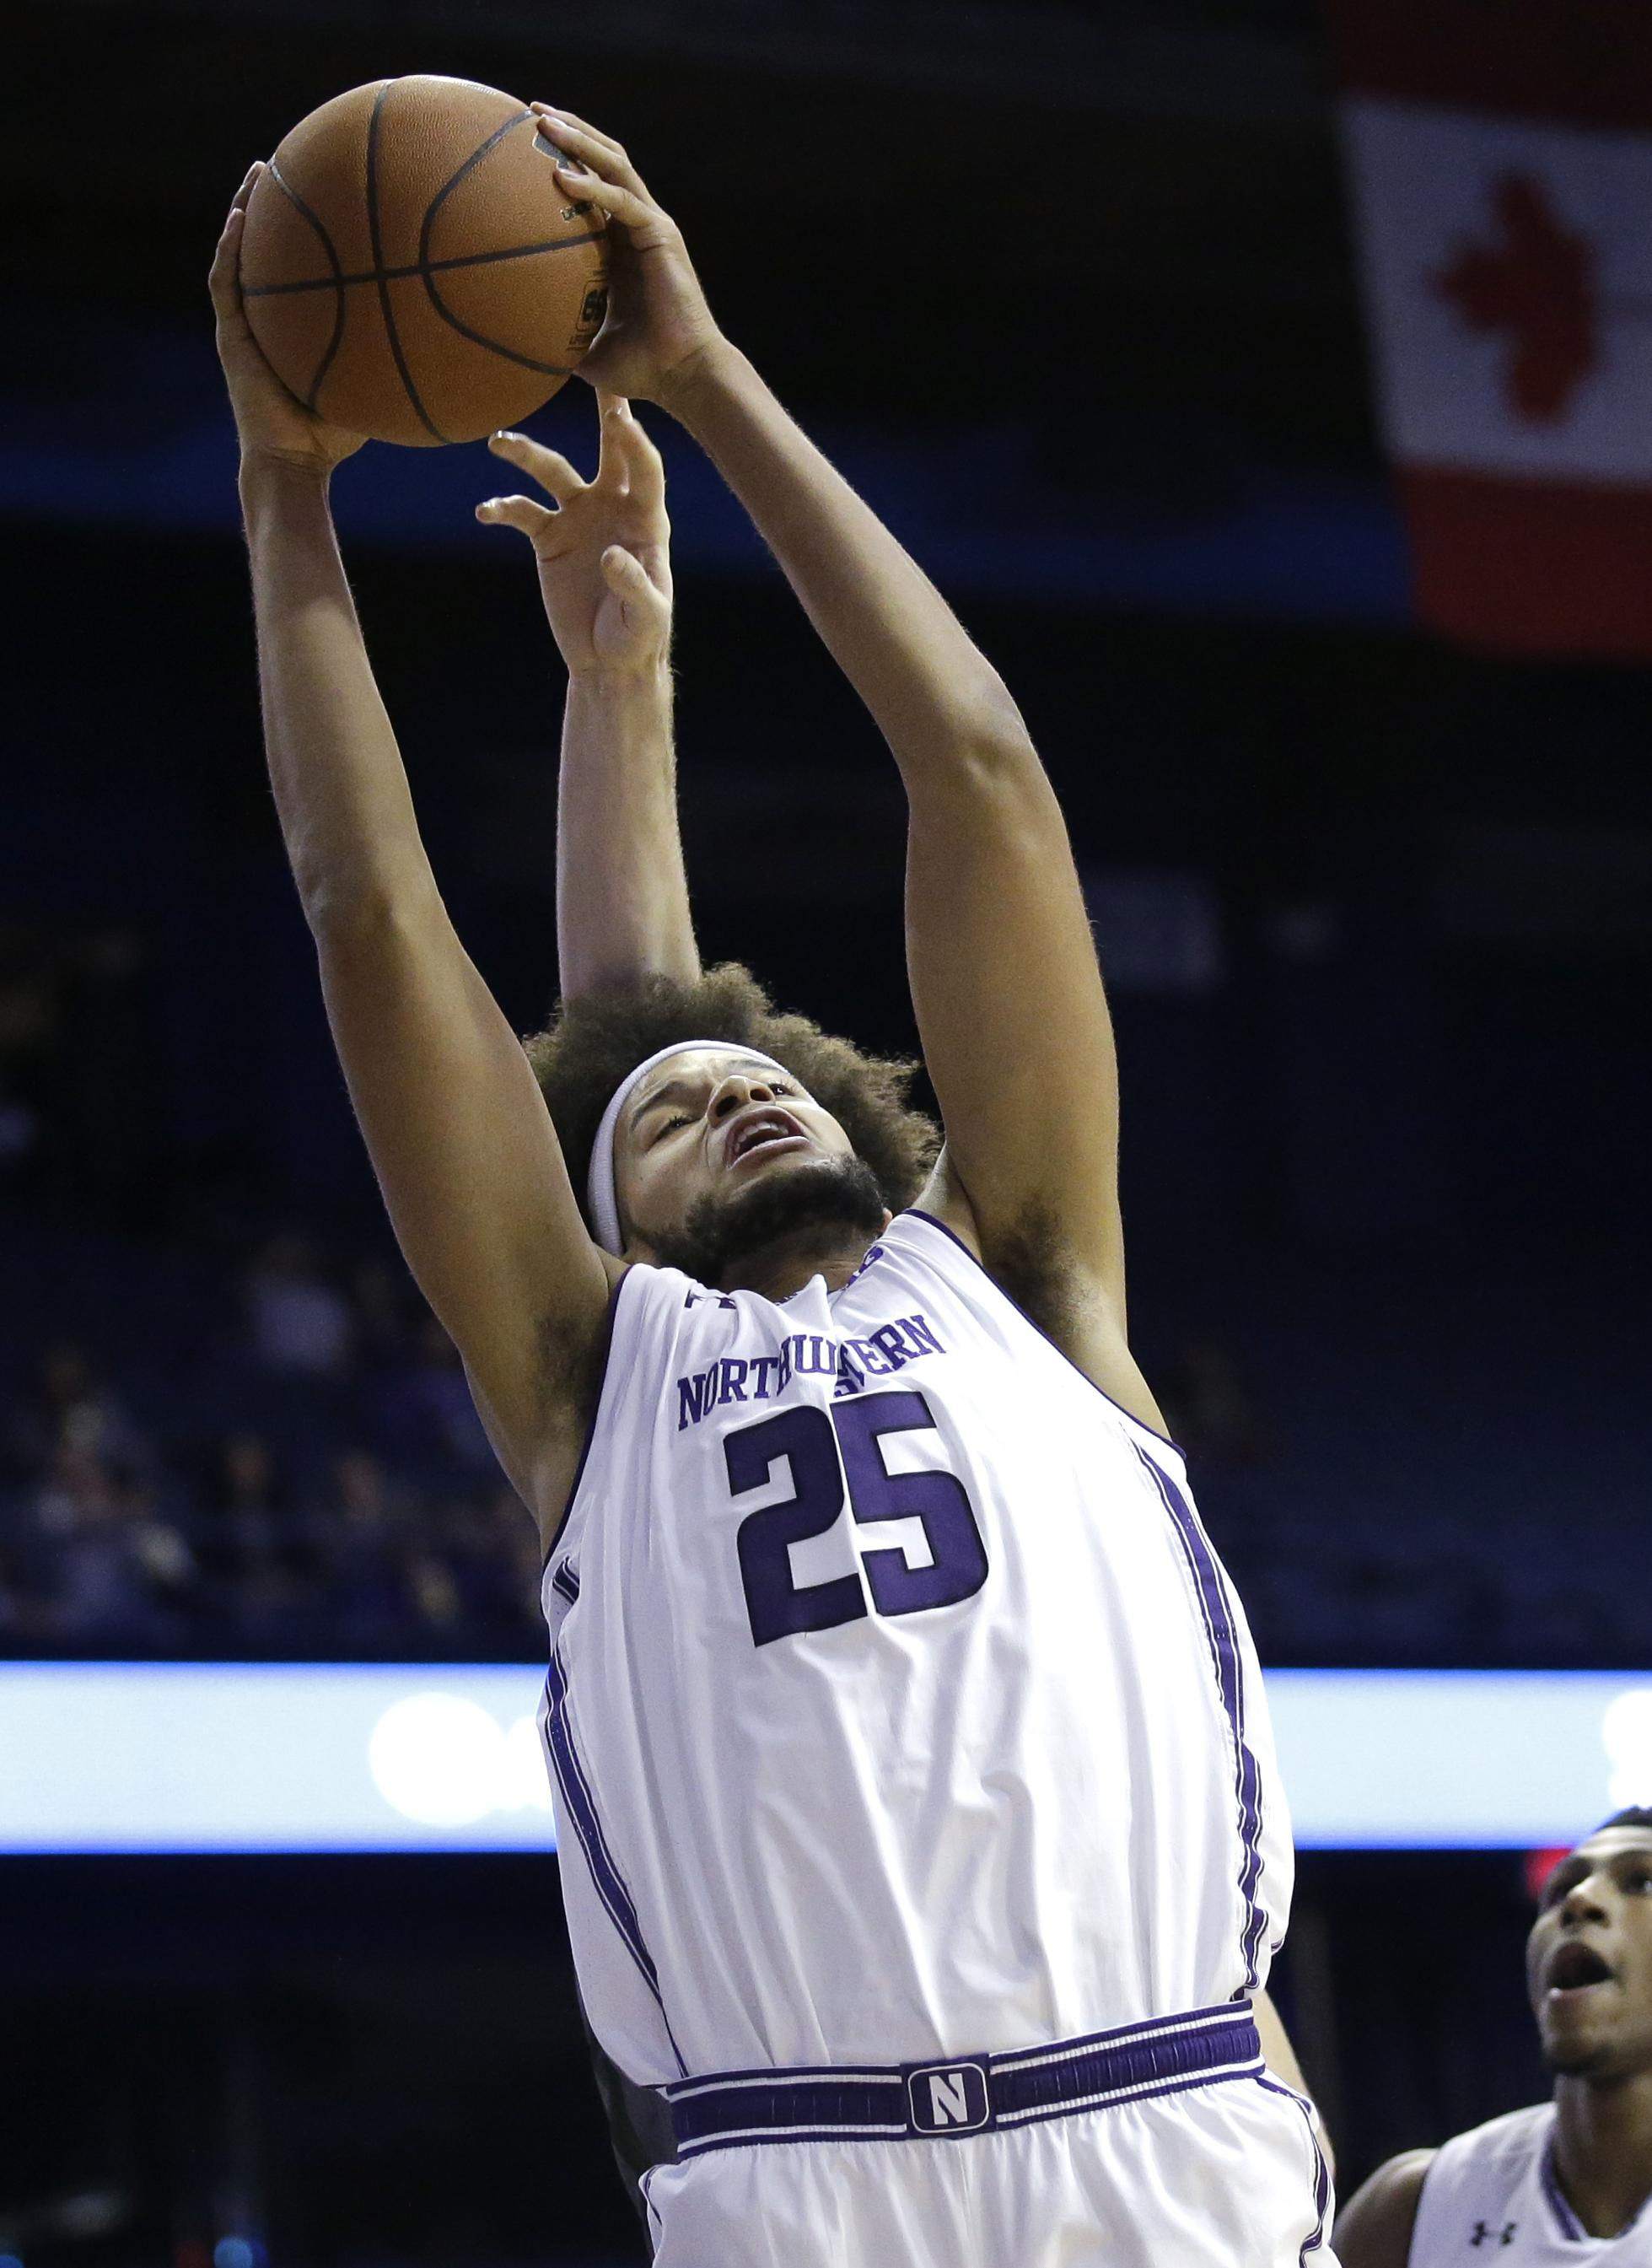 Lindsey scores 26 points as Northwestern beats Loyola (Md